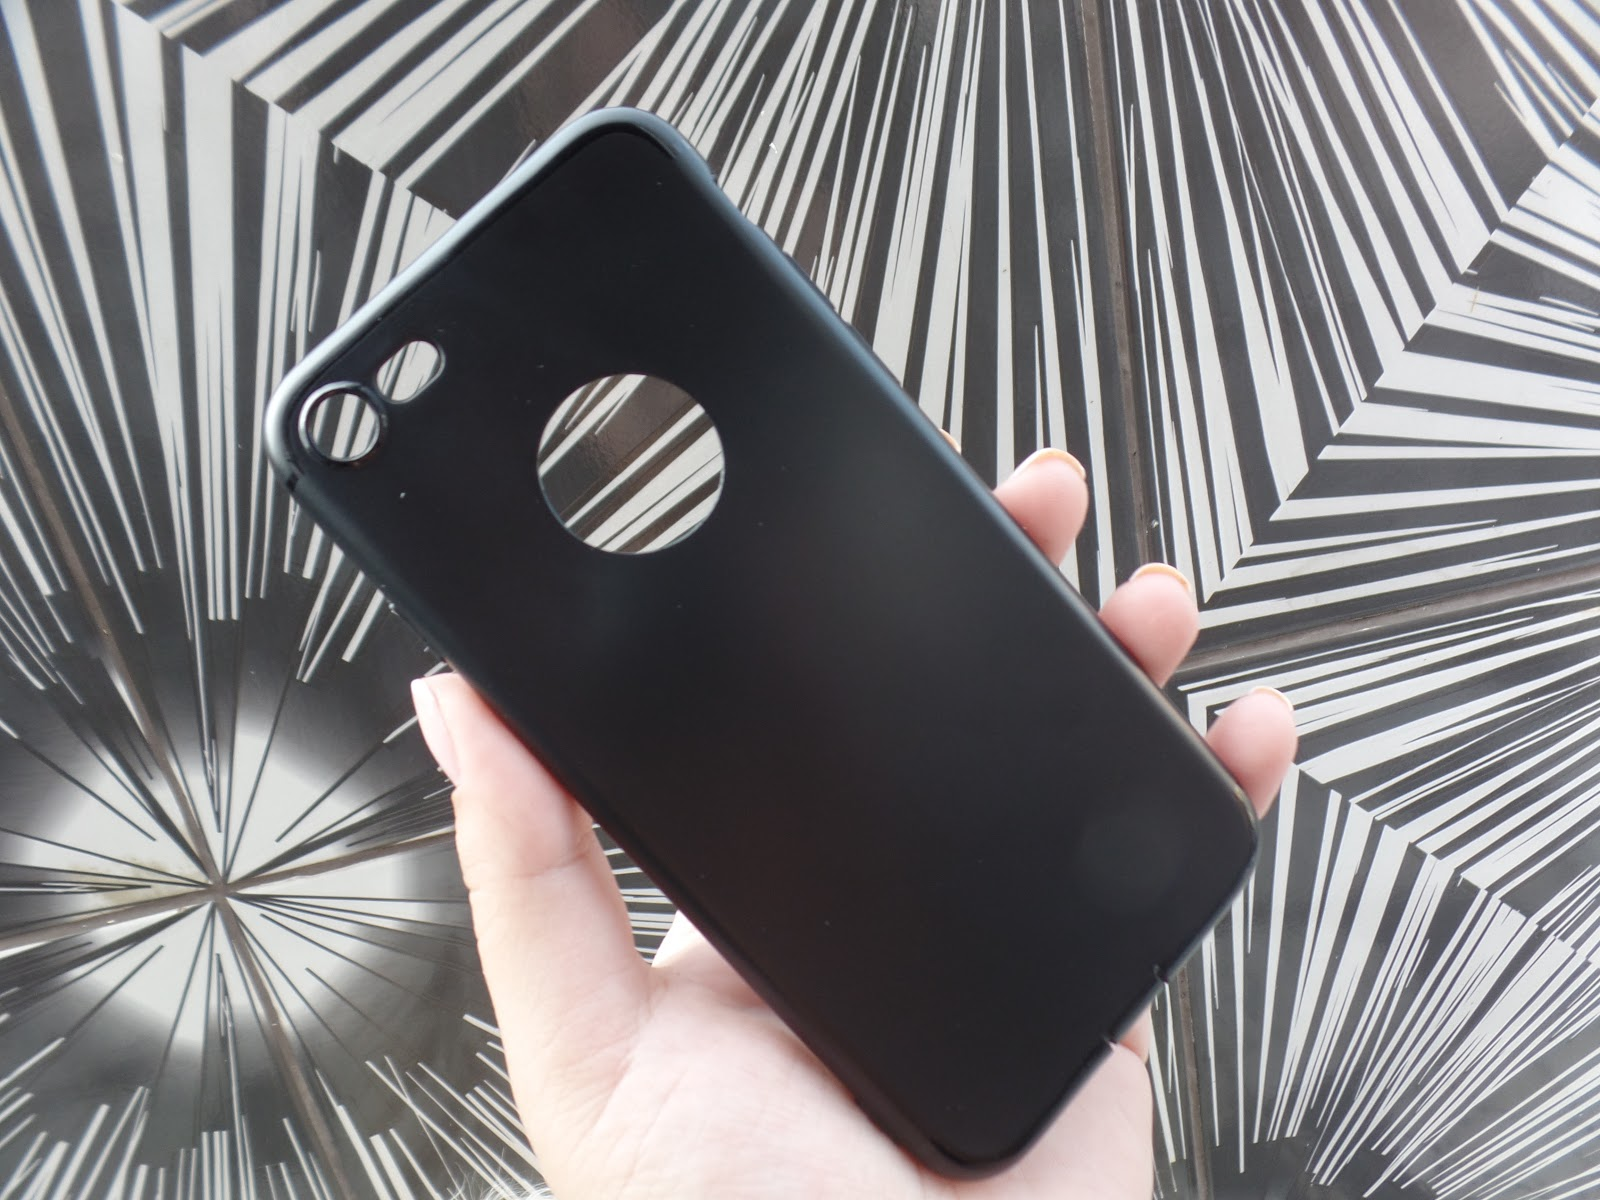 https://www.banggood.com/Bakeey-Ultra-thin-Soft-TPU-Matte-Silicone-Dustproof-Back-Cover-Case-for-iPhone-7-4_7-inch-p-1142946.html?utm_source=seo&utm_medium=organic&utm_campaign=14878842&utm_content=10360